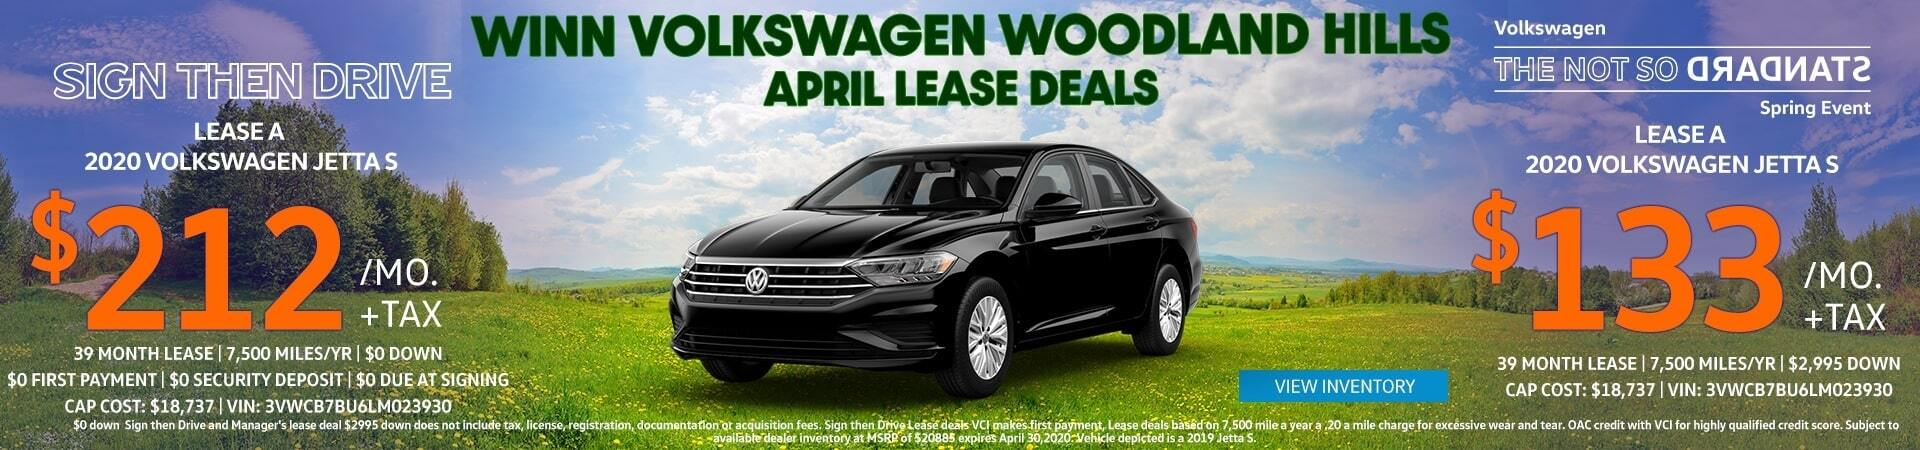 April Volkswagen Jetta Lease deal Los Angeles, Santa Monica, Van Nuys, Thousand Oaks, Santa Clarita, North Hollywood , Simi Valley